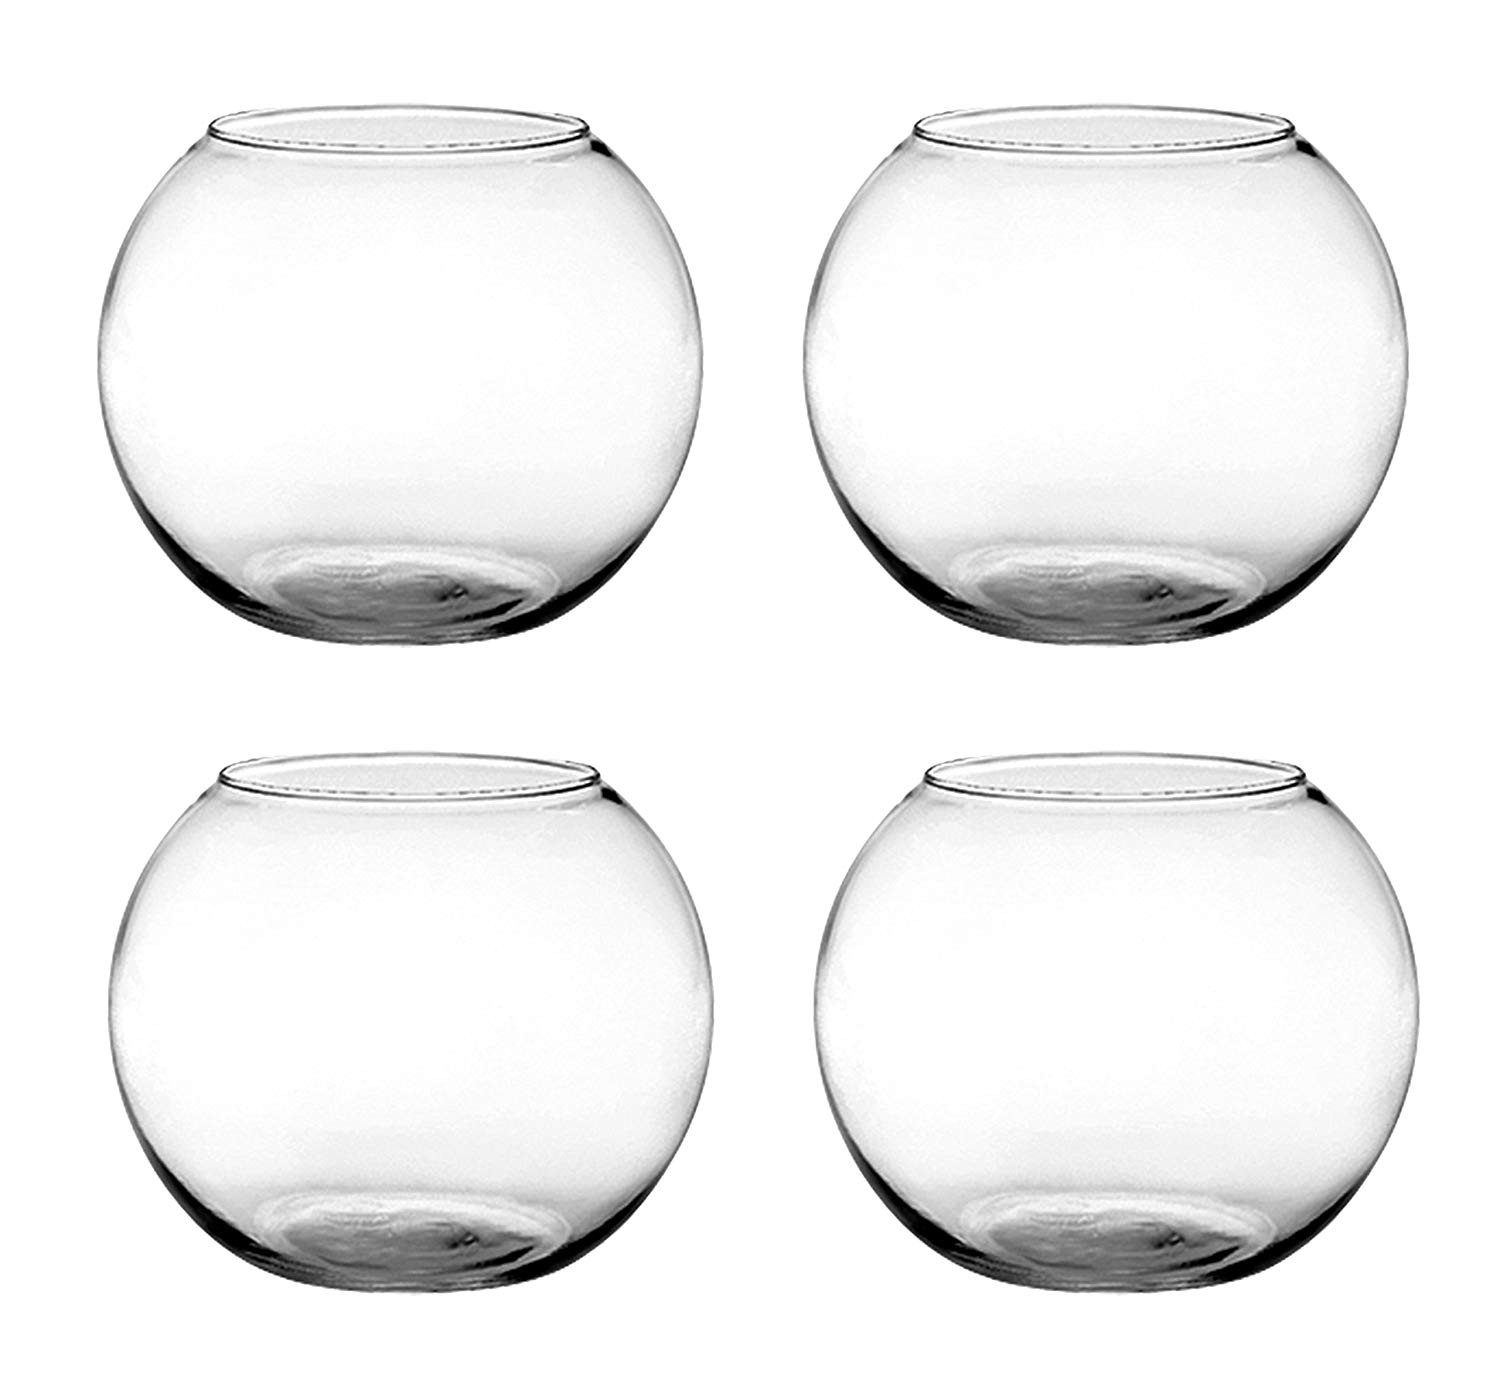 black plastic flower vases of amazon com set of 4 syndicate sales 6 inches clear rose bowl for amazon com set of 4 syndicate sales 6 inches clear rose bowl bundled by maven gifts garden outd